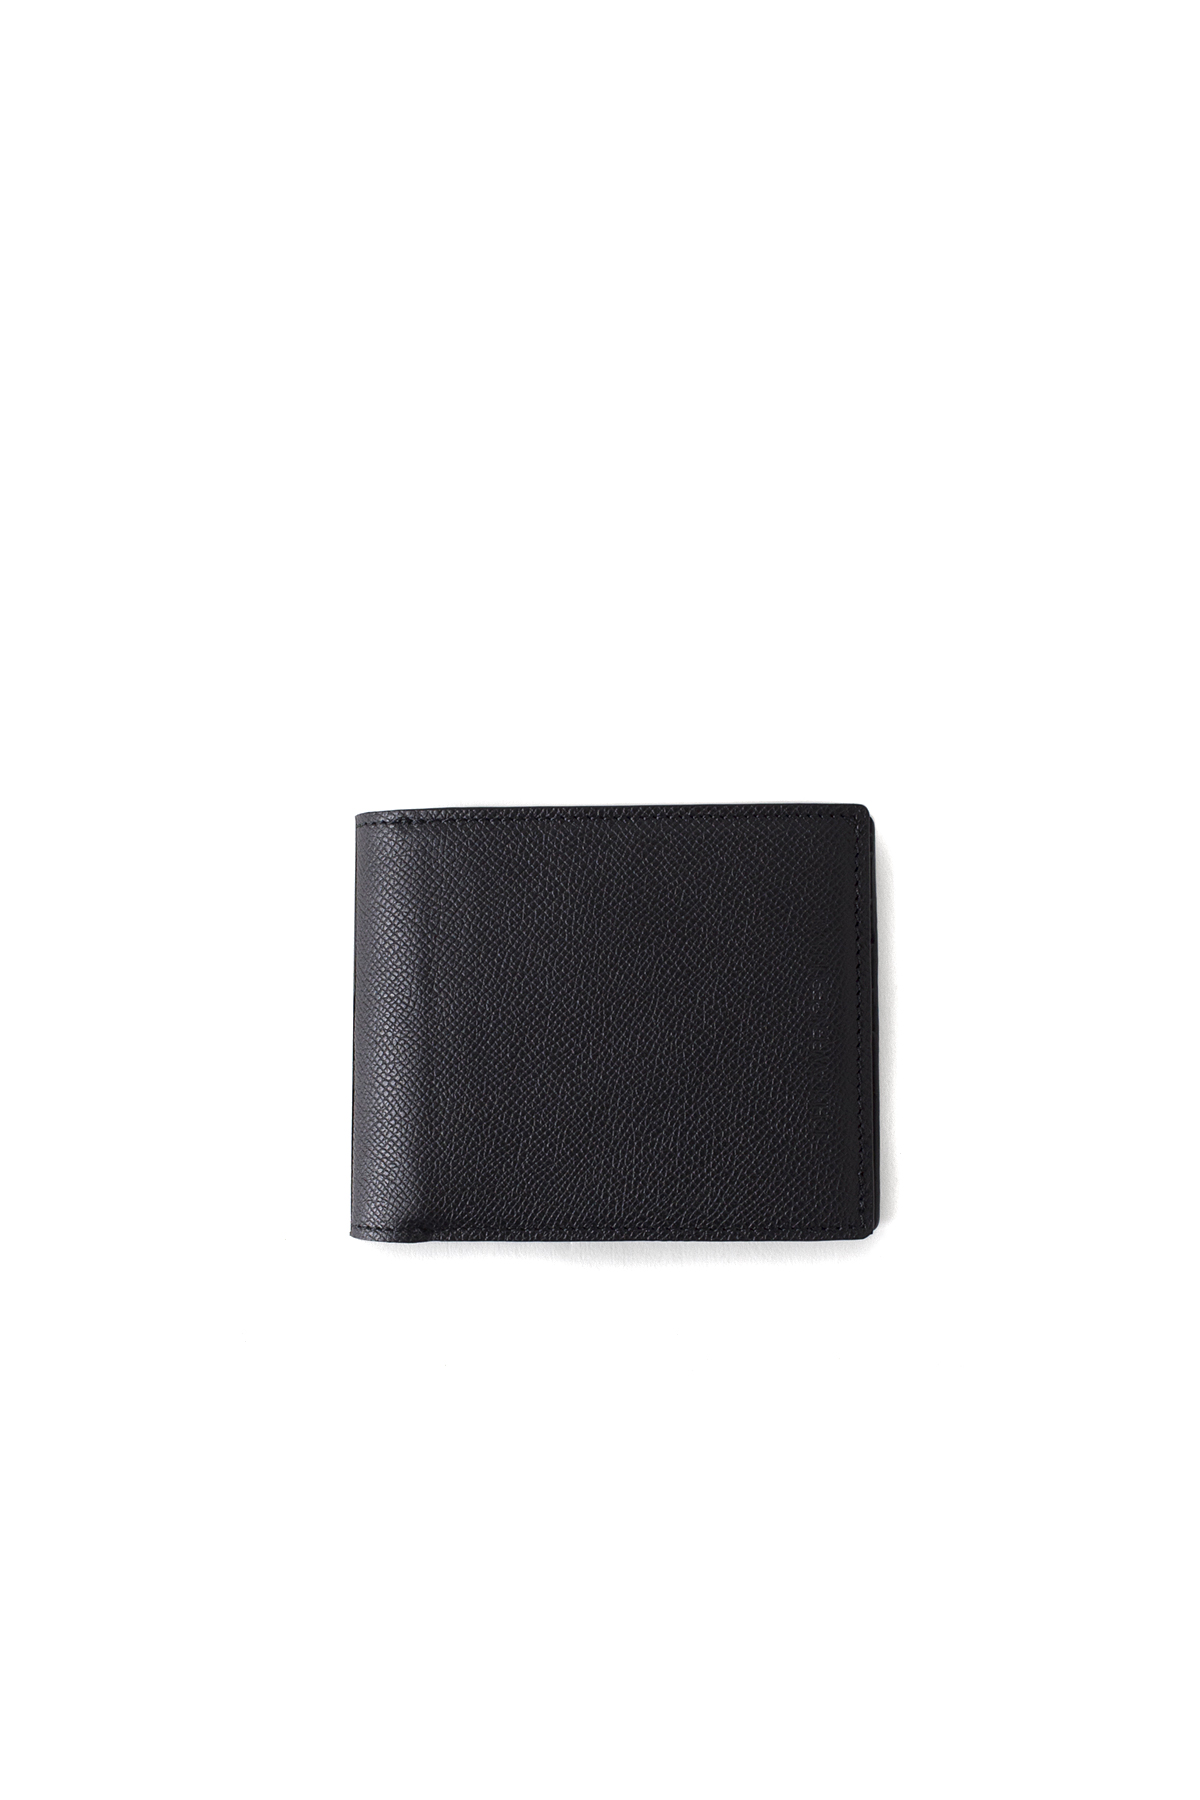 JOHN LAWRENCE SULLIVAN : 2way Coin Wallet (Black)